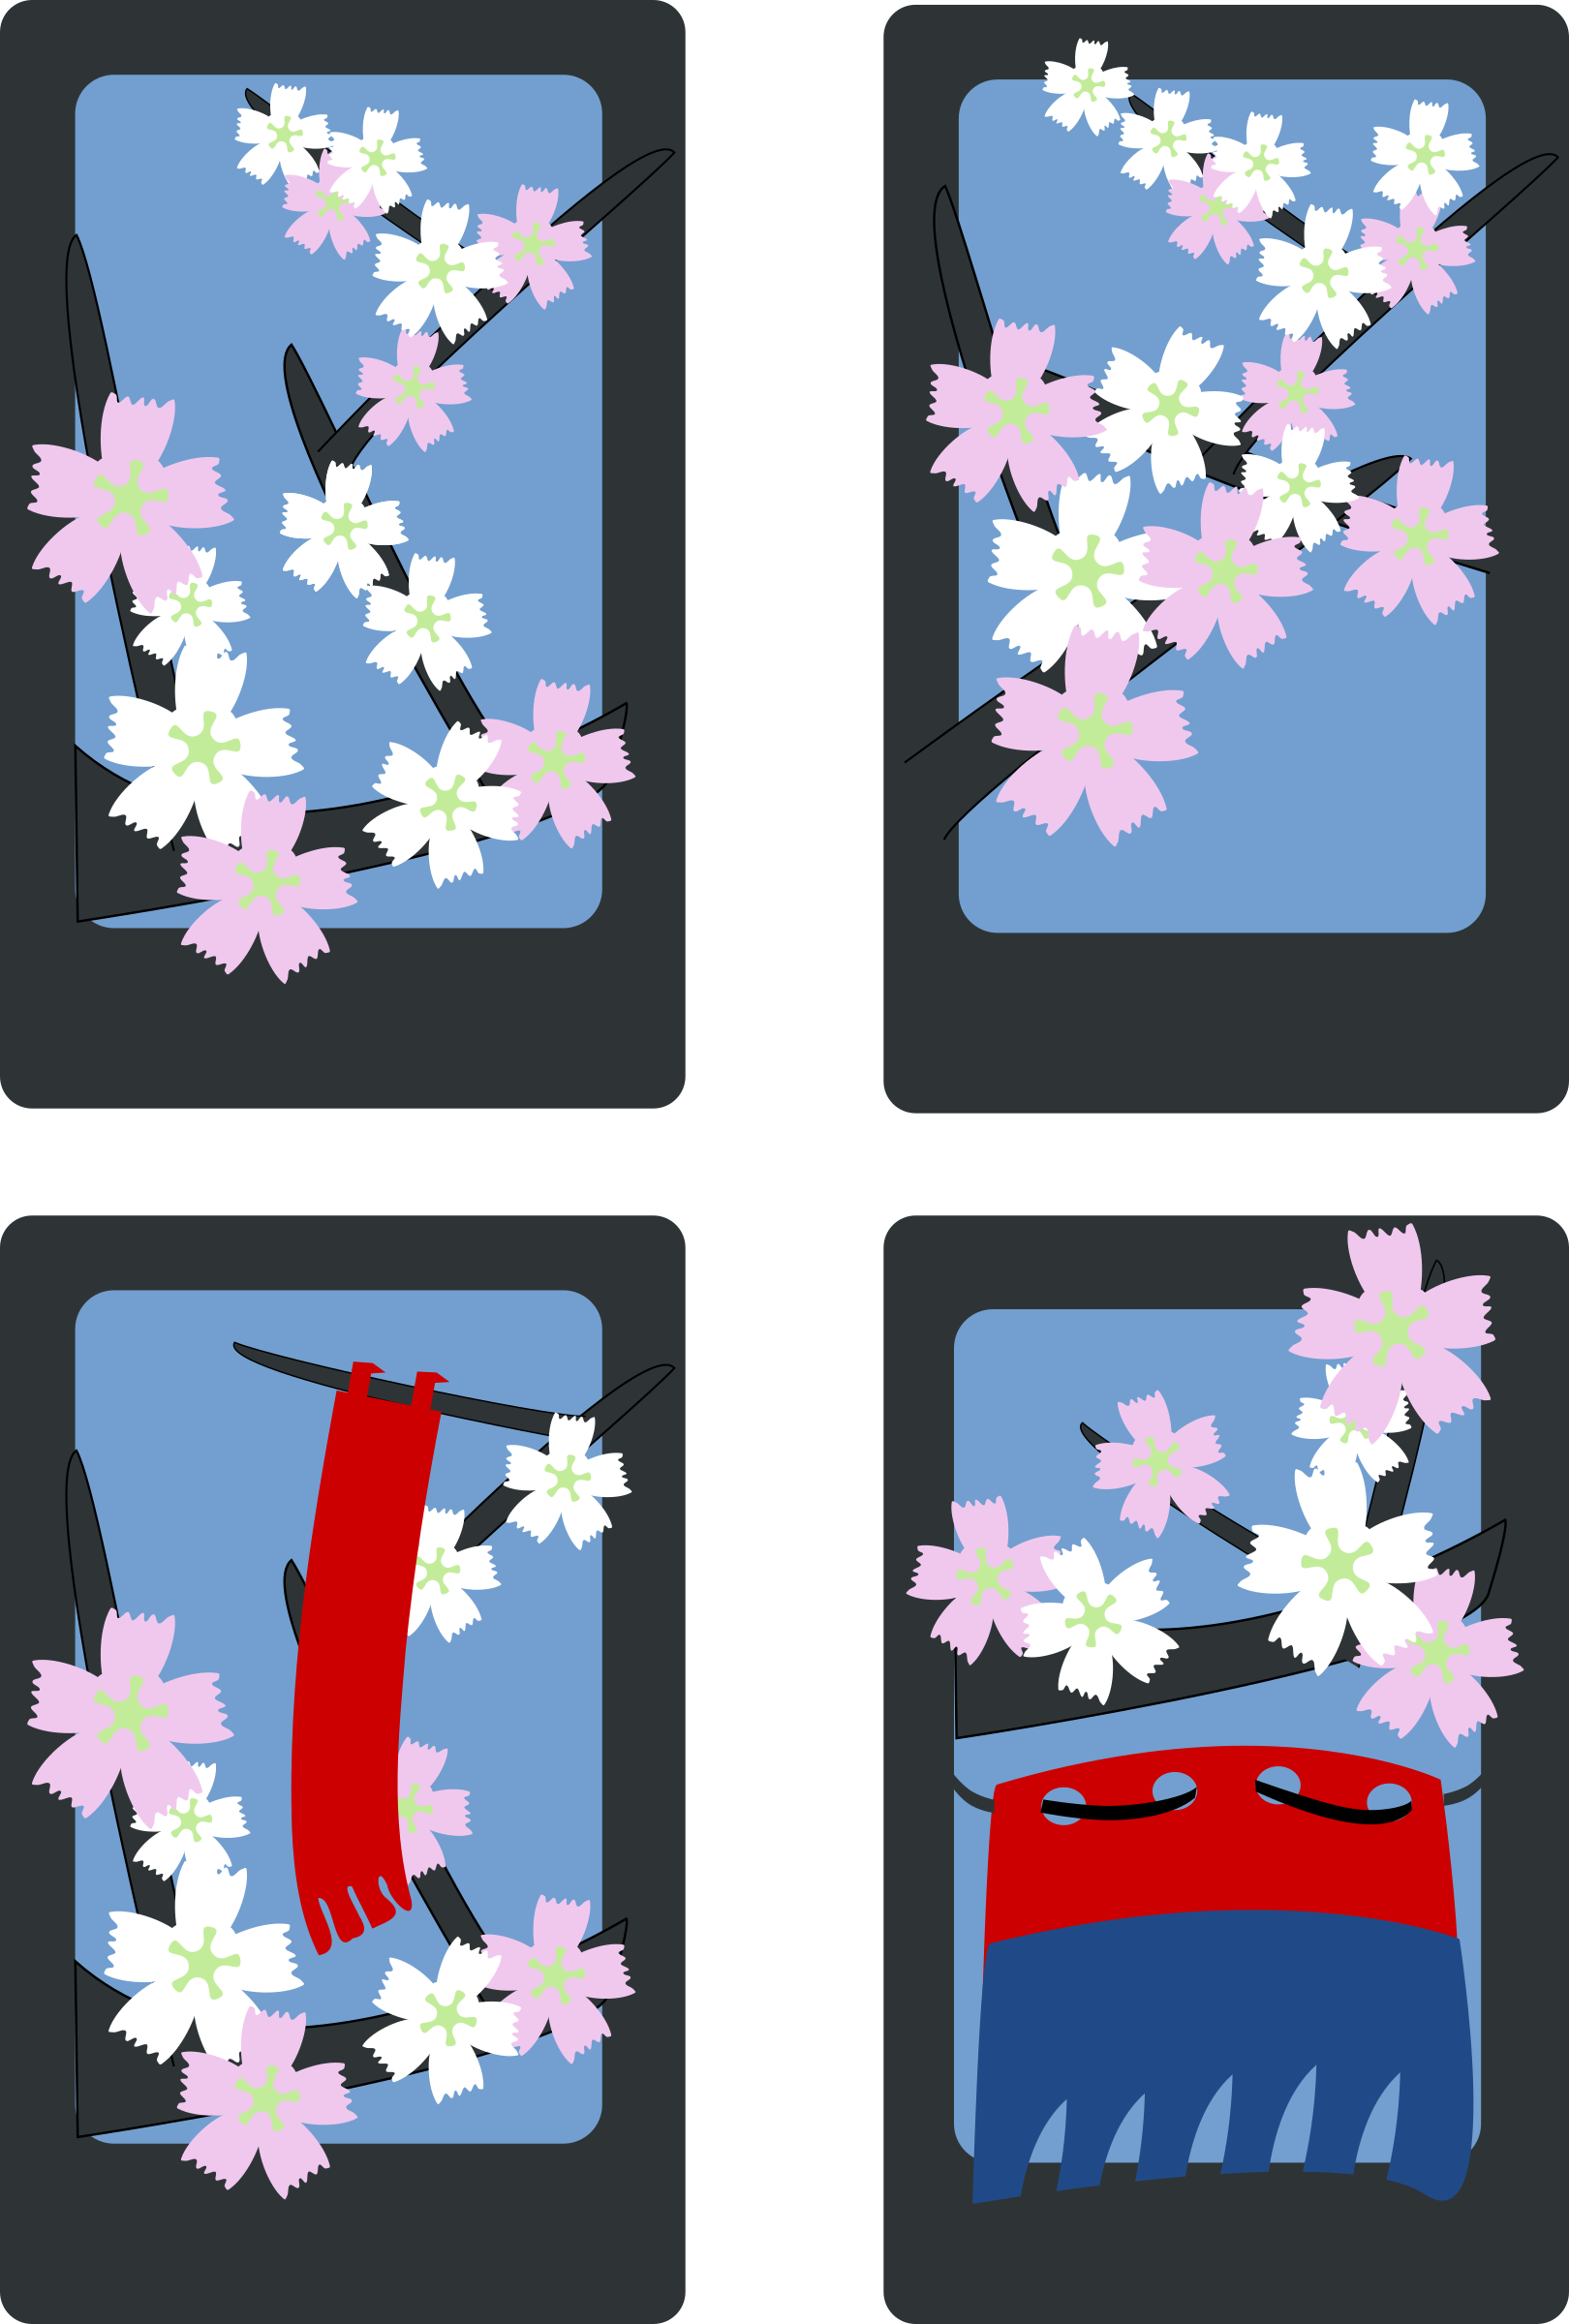 Hanafuda Sakura (March) by rg1024